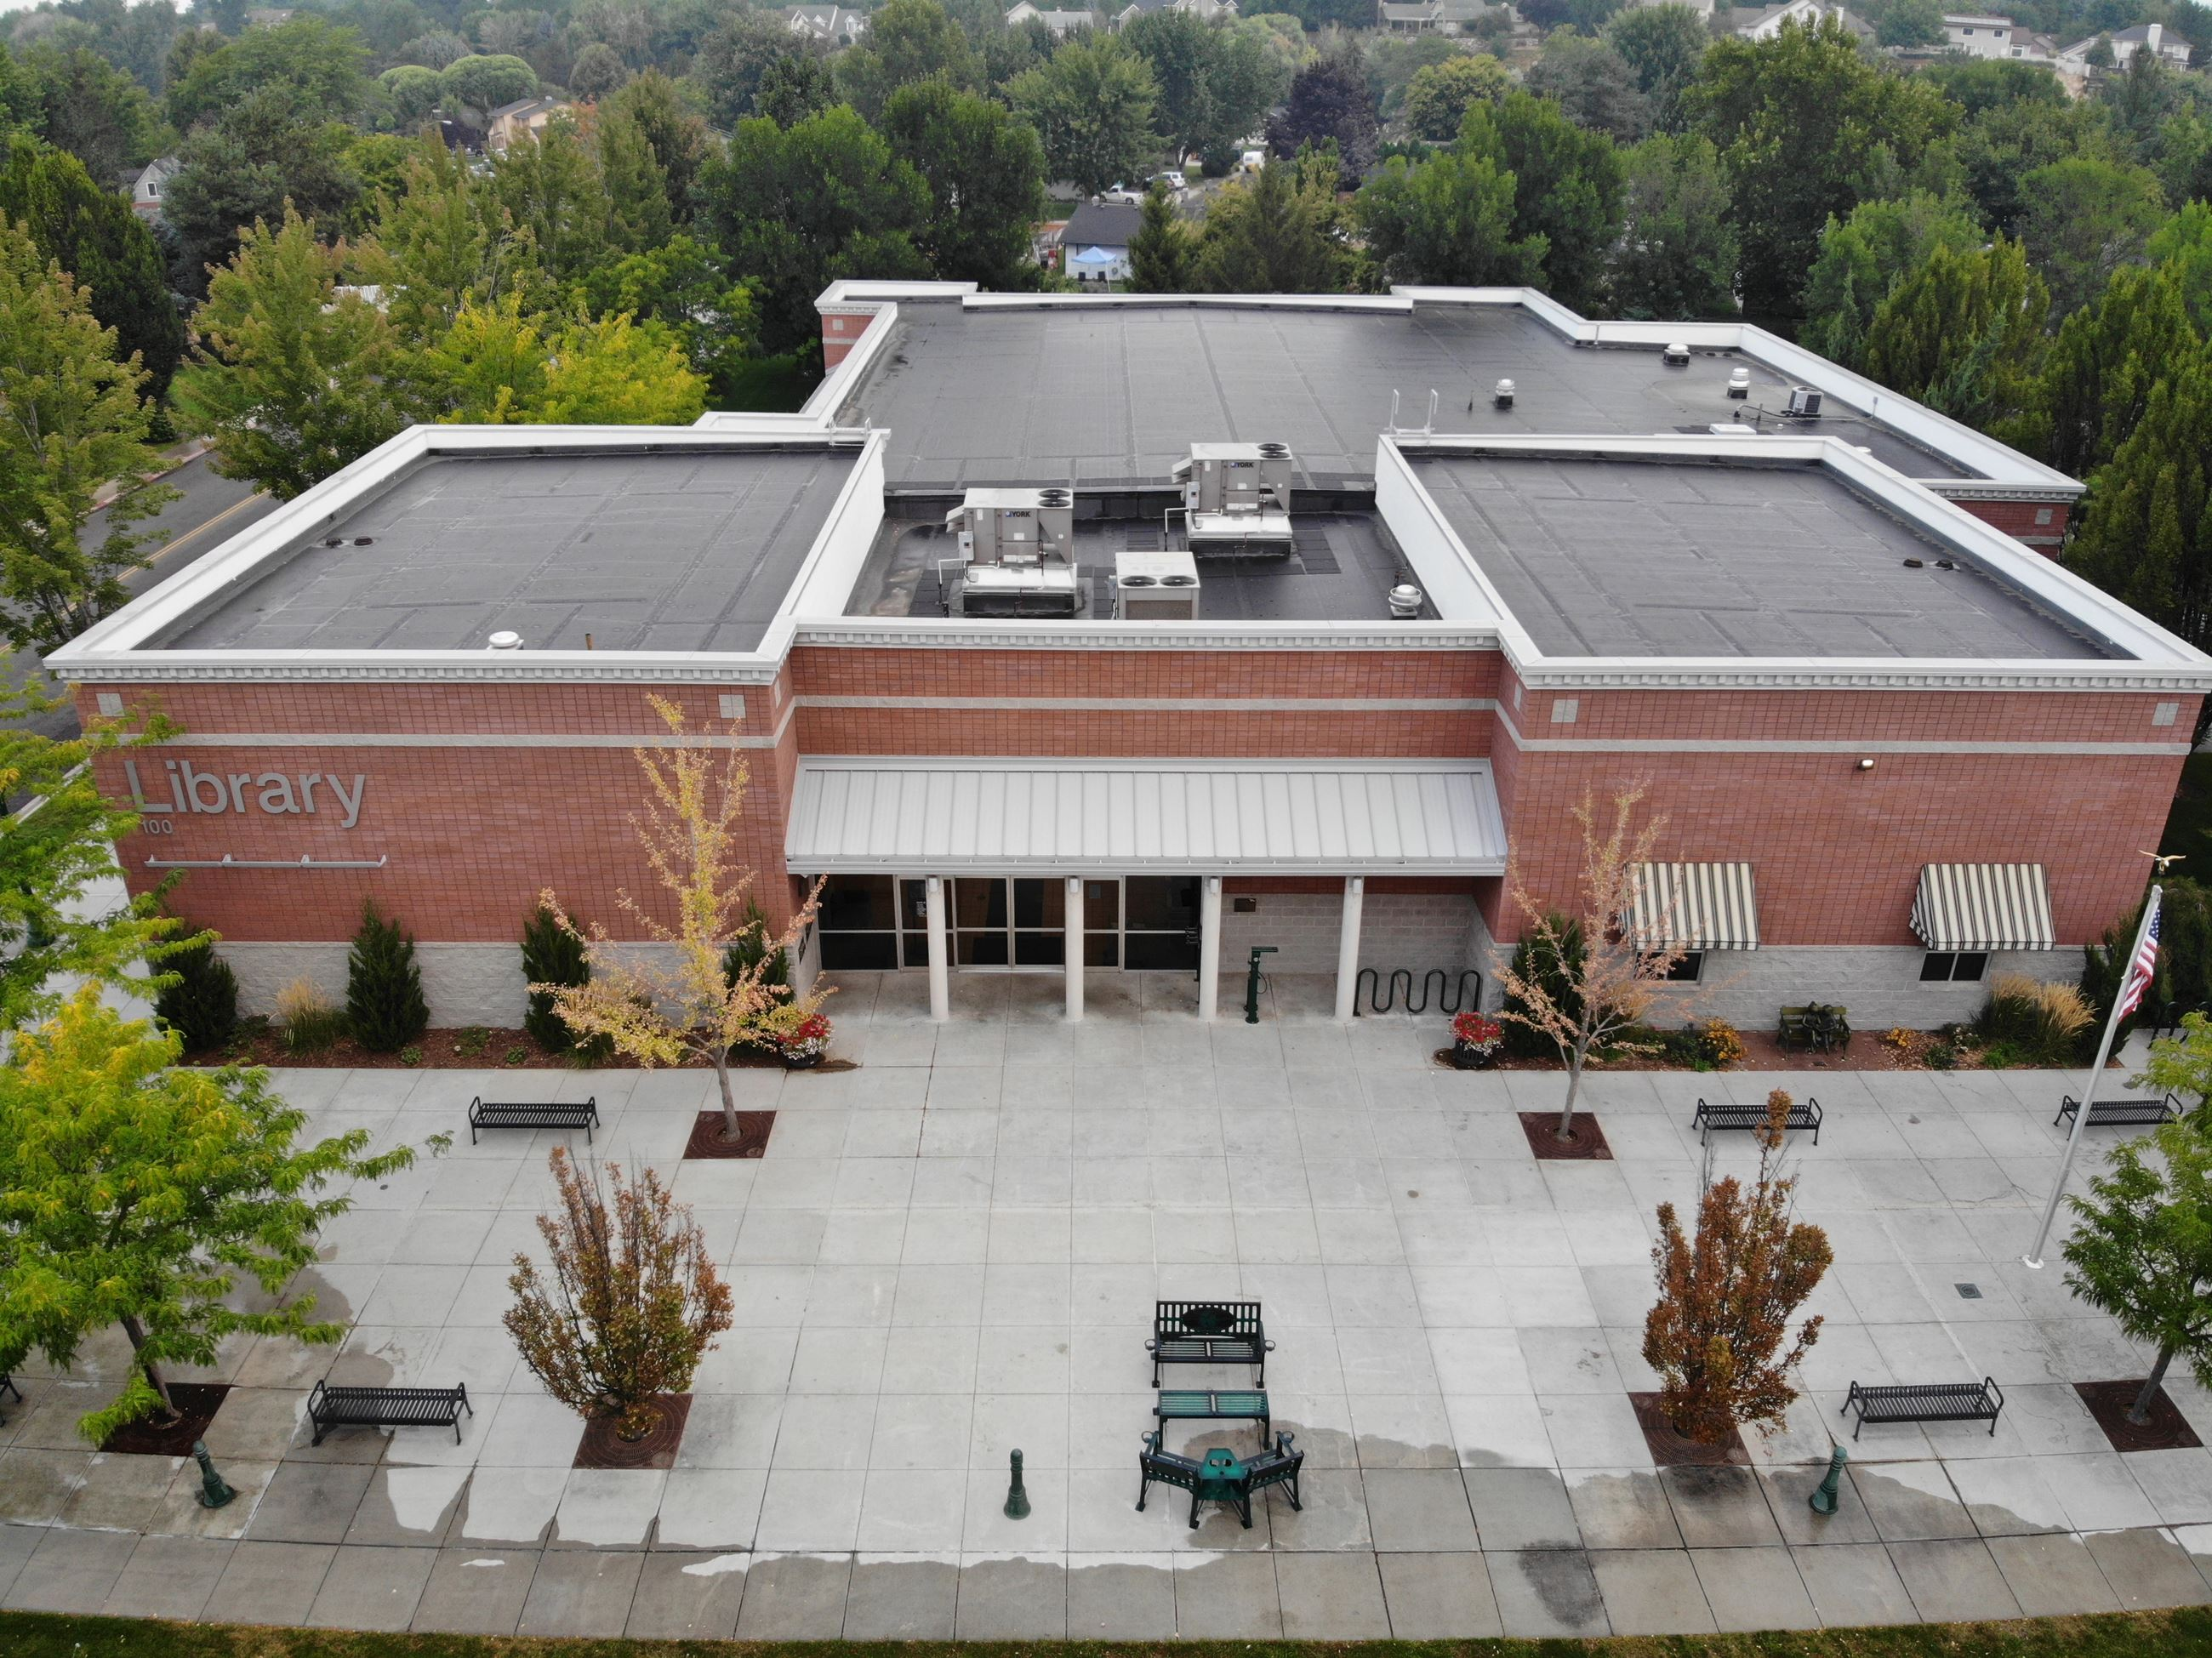 An aerial photo of the front of the Eagle Library. The Eagle Library is a red brick building.